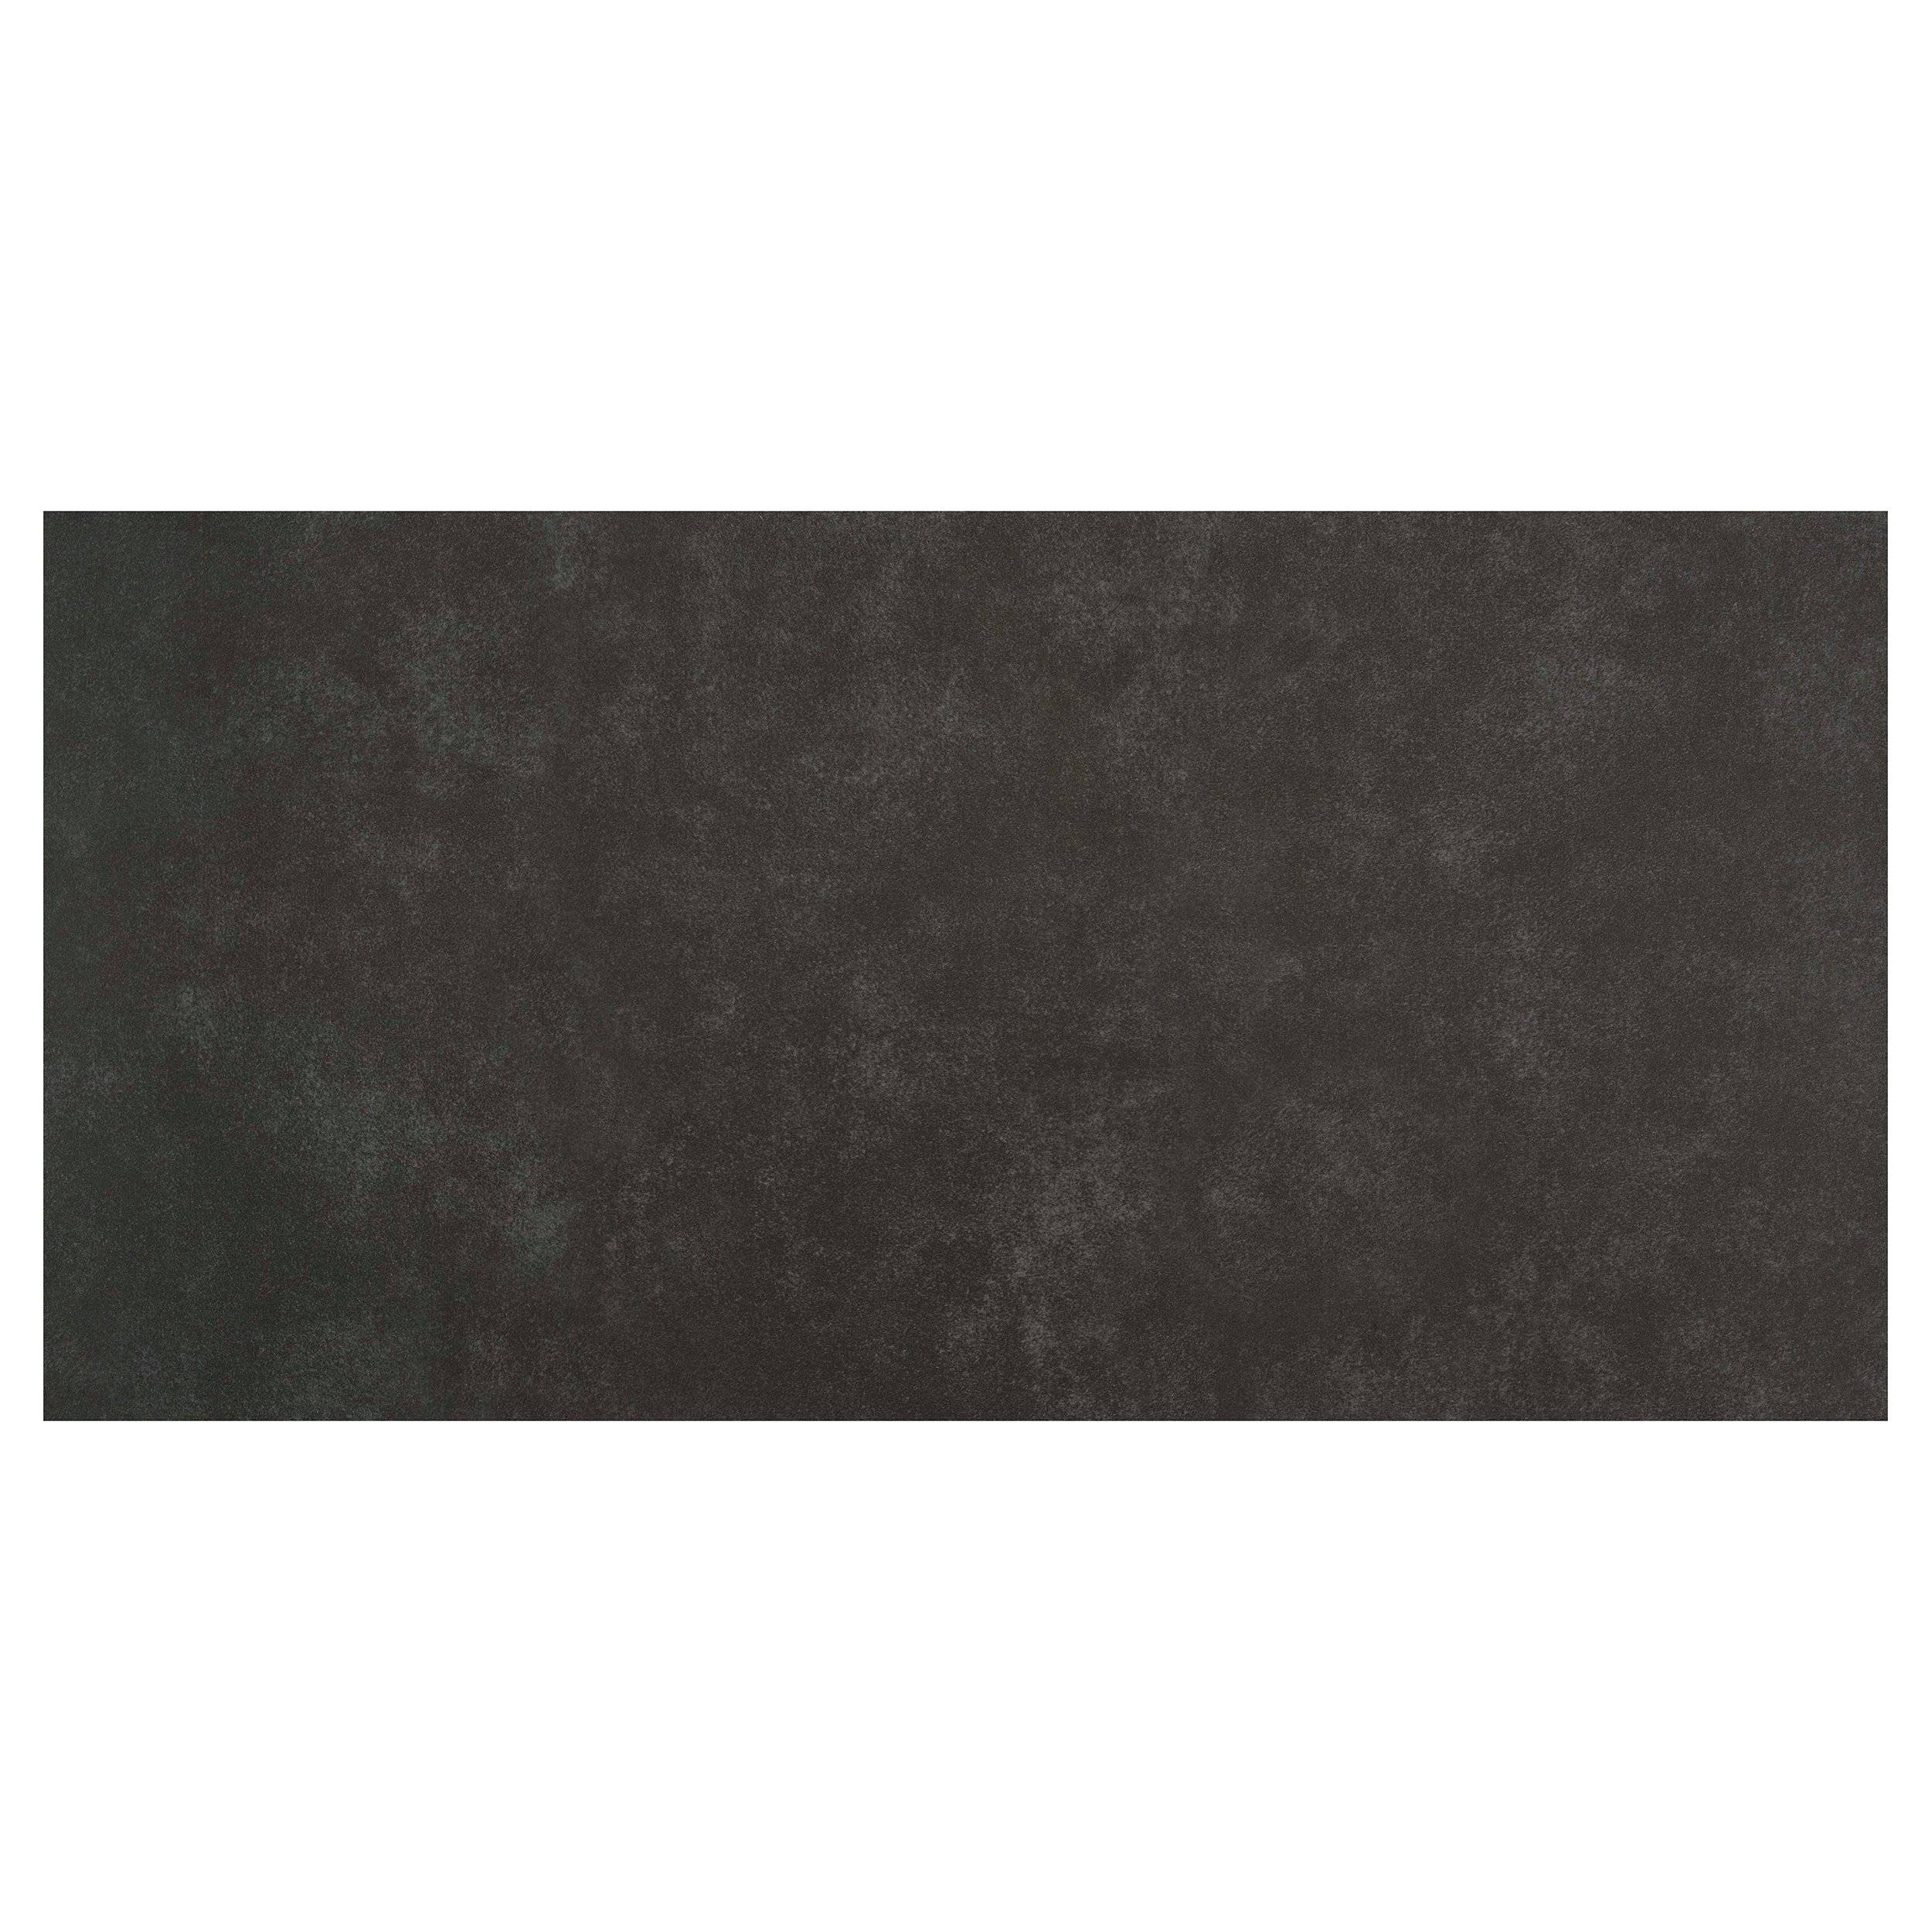 Uptown Antracite Ii Matte Porcelain Tile 24 X 48 100700814 Floor And Decor